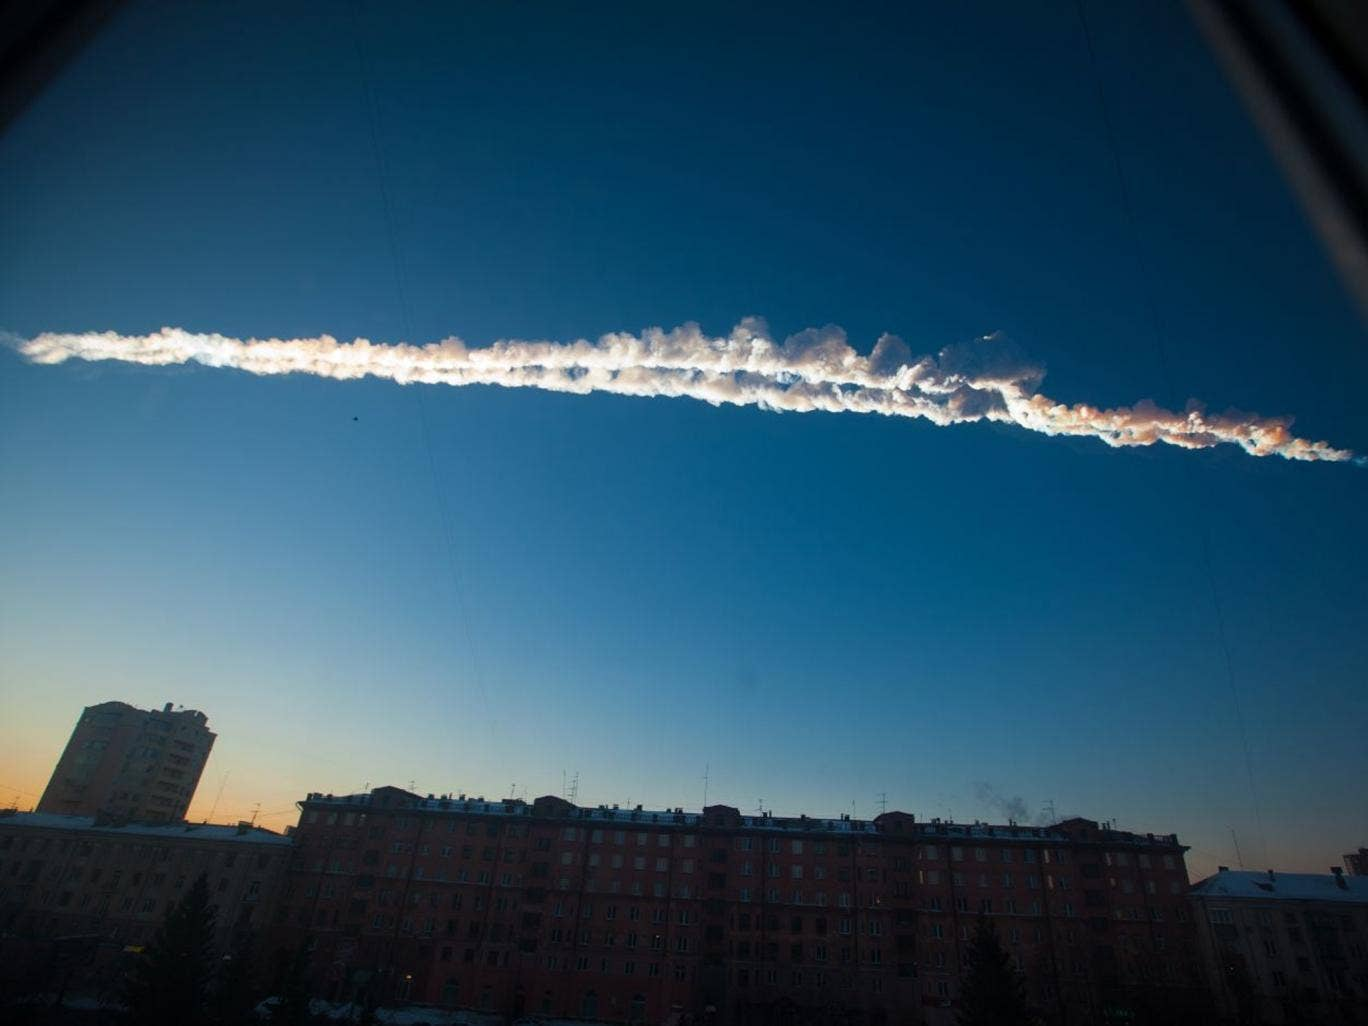 A meteorite trail is seen over Chelyabinsk